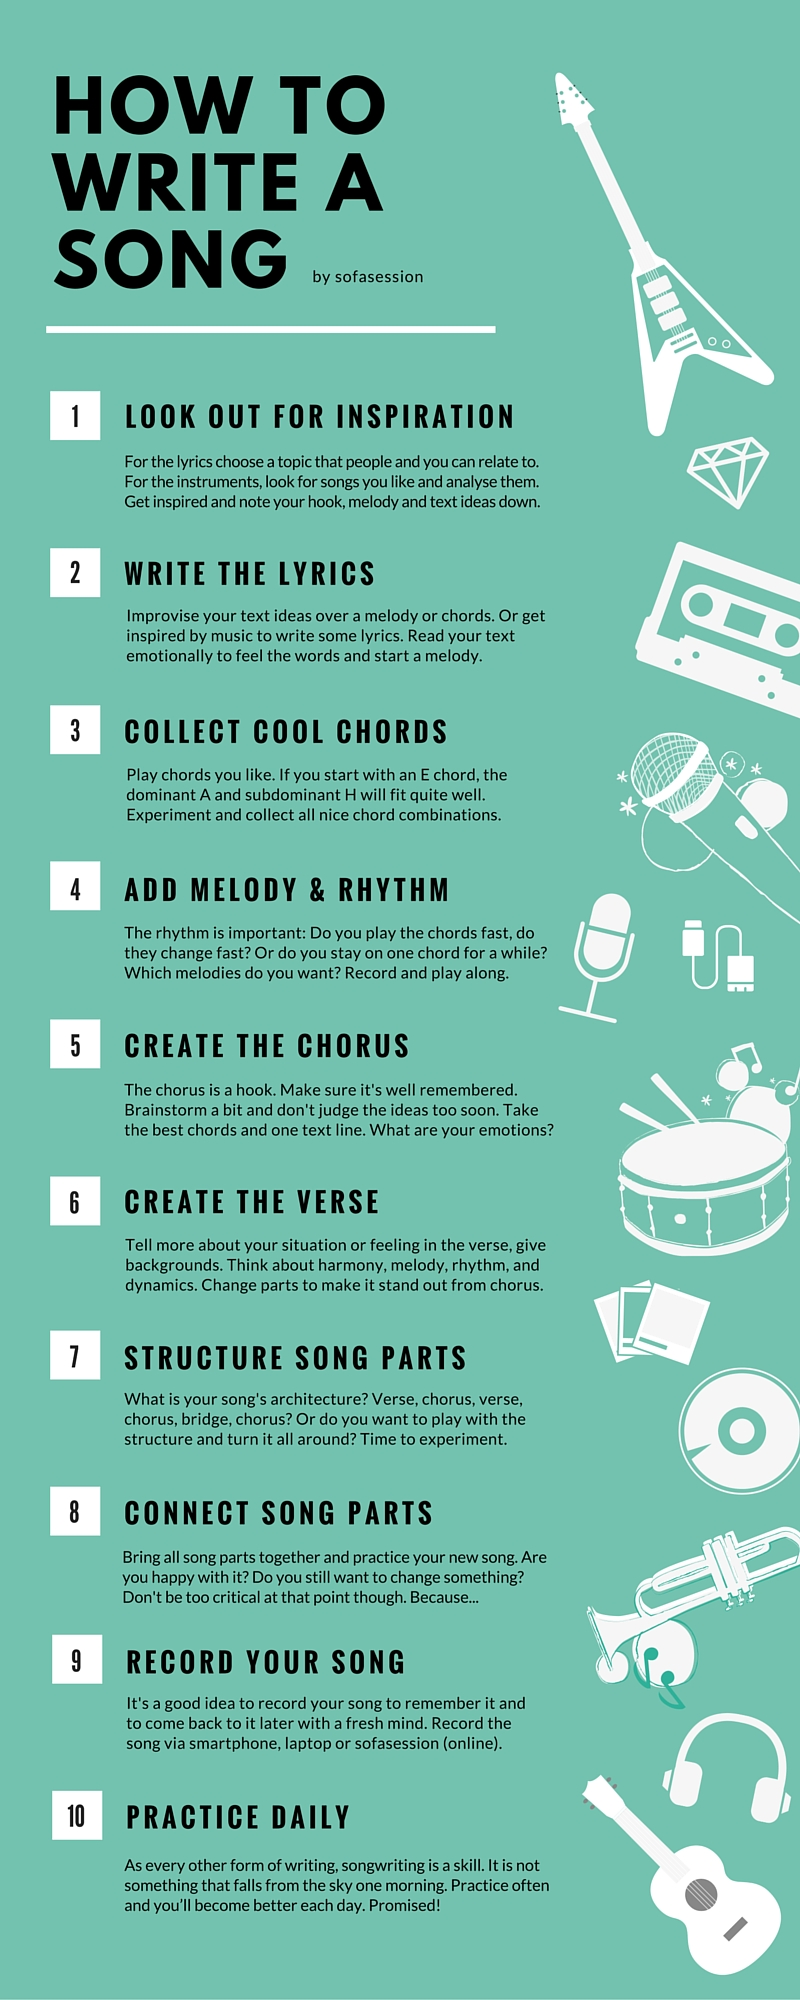 Tips on how to write great songs essay on behaviorism theory